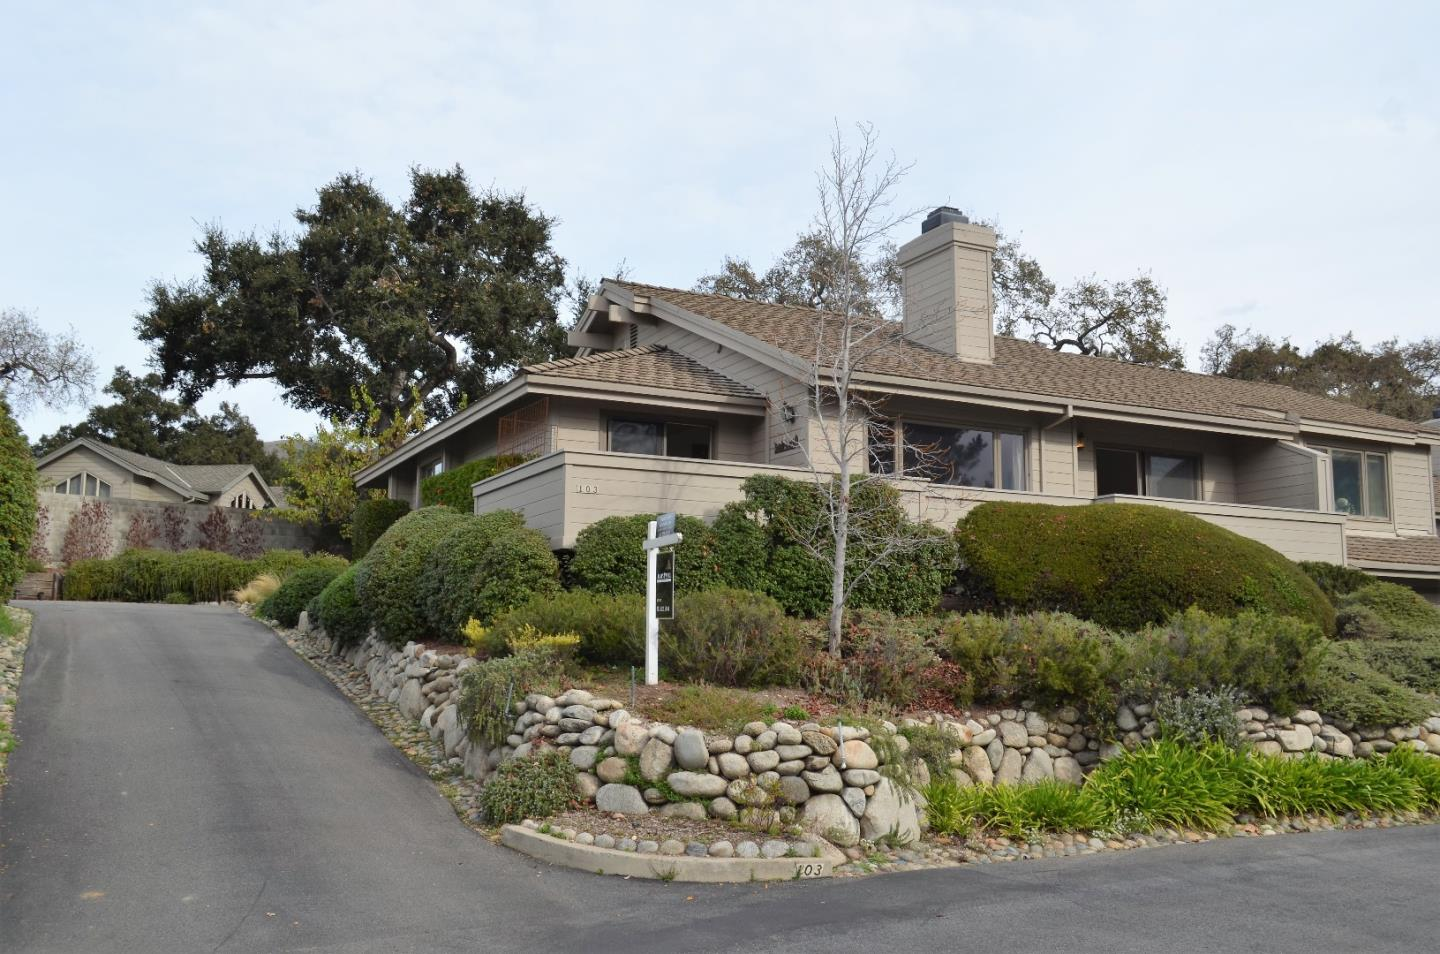 Property for sale at 103 White Oaks LN, Carmel Valley,  CA 93924